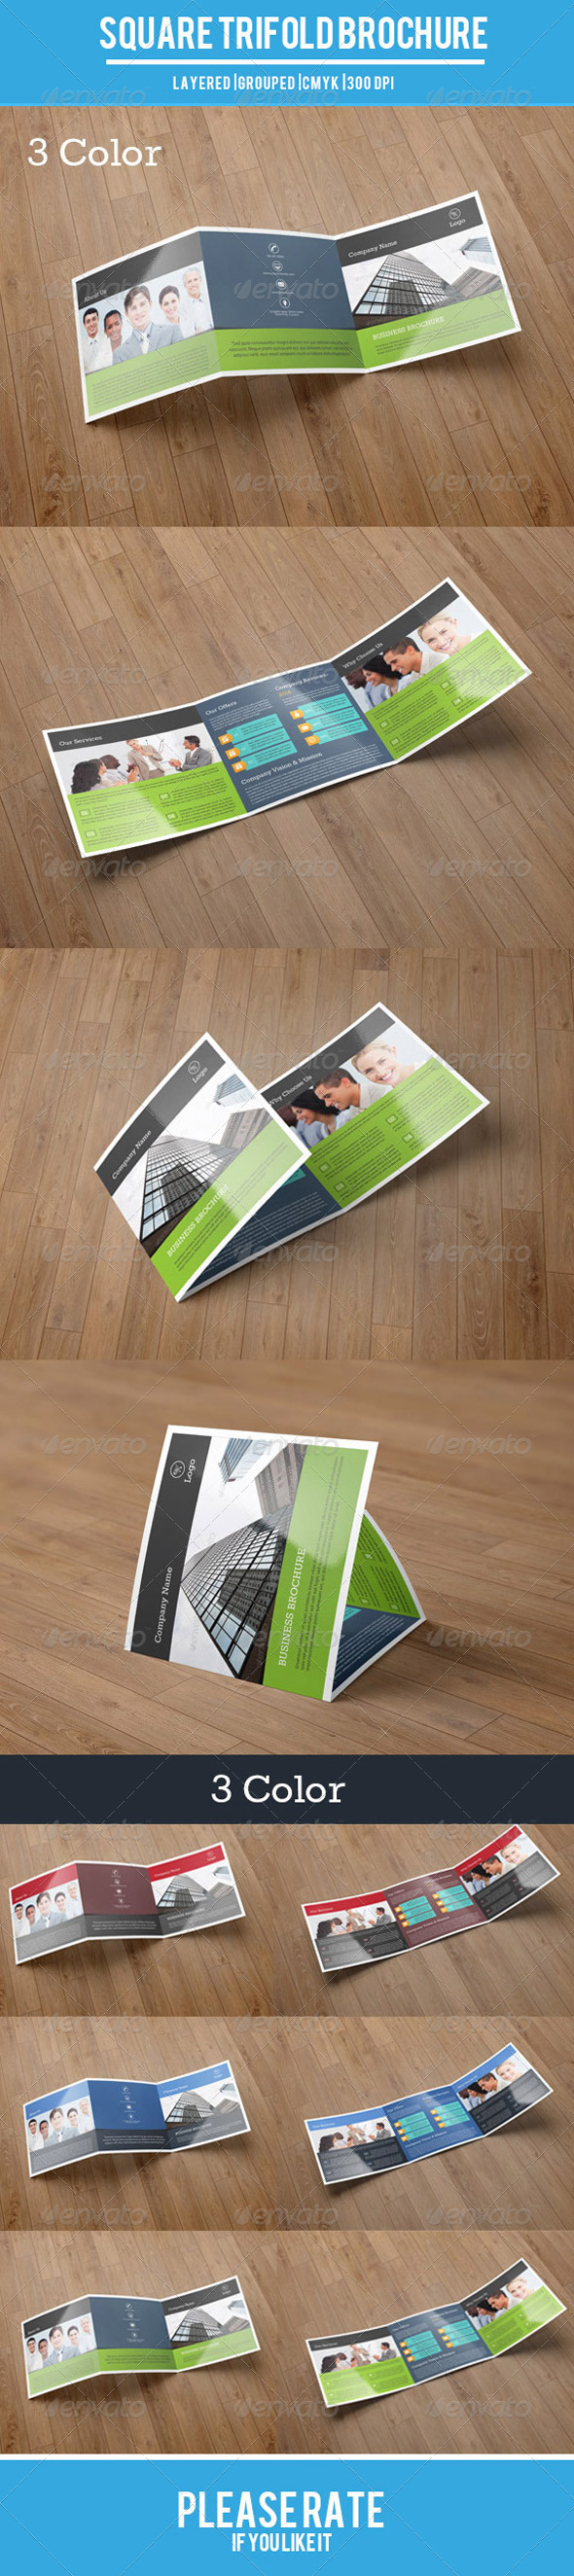 Square Trifold Business Brochure-V13